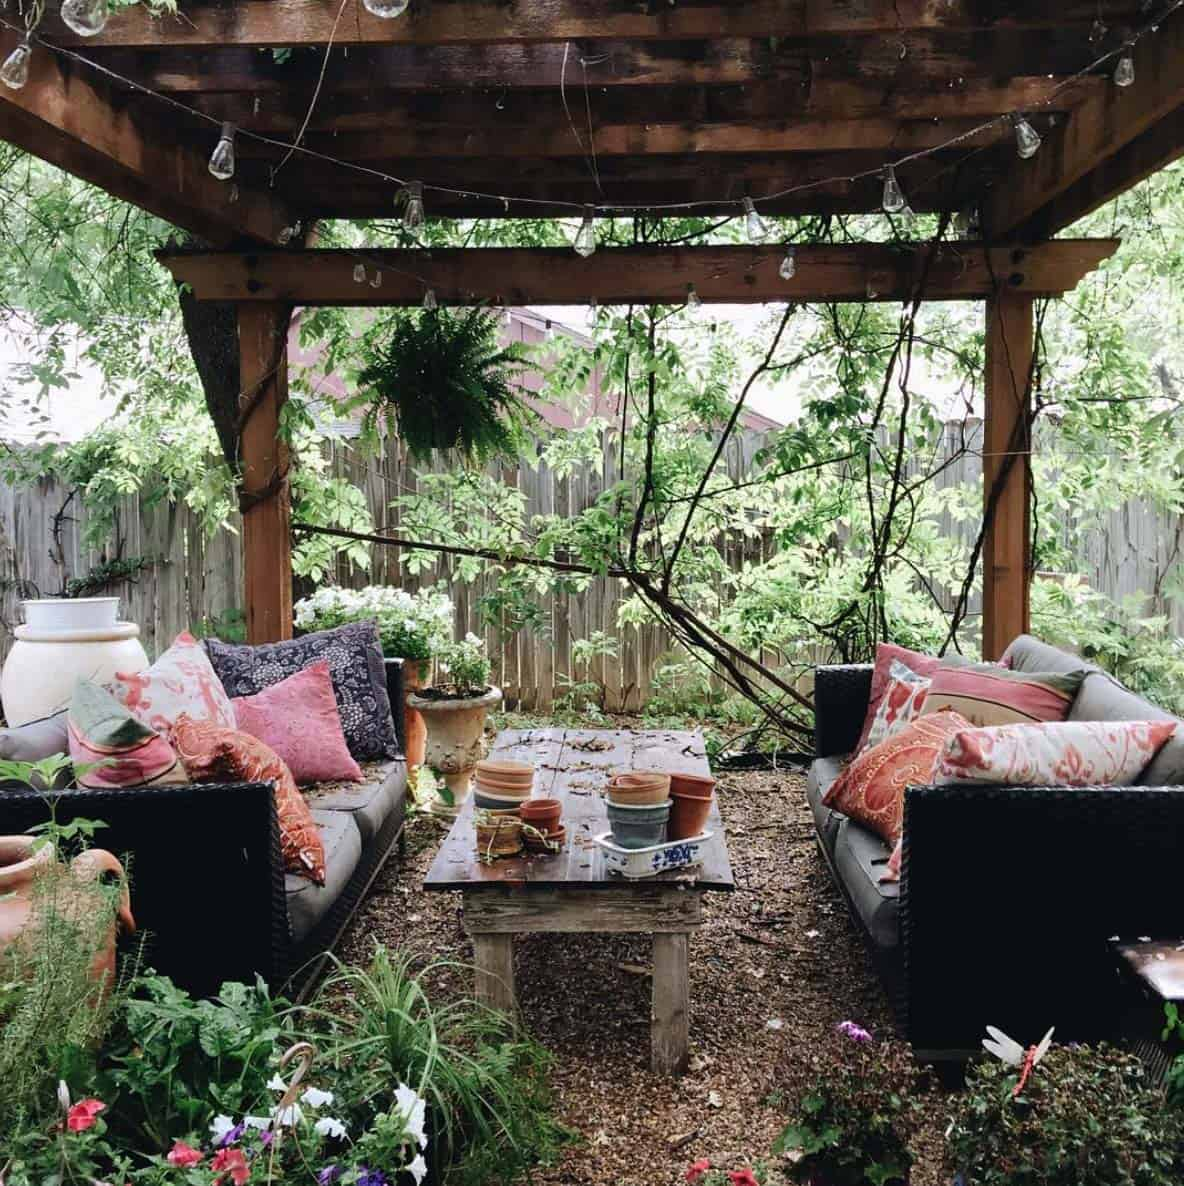 Home And Garden Design Ideas: 28 Absolutely Dreamy Bohemian Garden Design Ideas